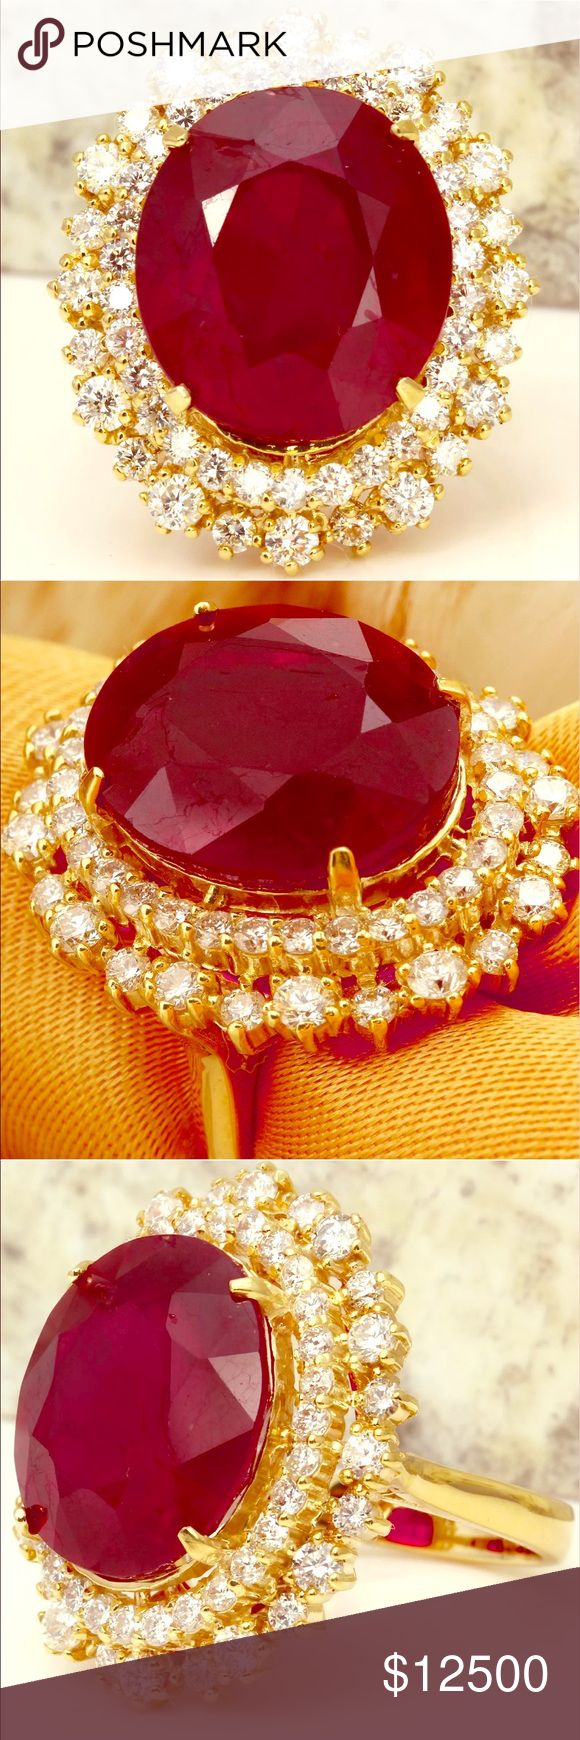 A Red Ruby Collection Masterpiece  On Sale!!! This Is A Breathtaking  Gemstone GIA Rated As Museum Quality At A Whoping 19.96 Cts Just Under A 20Ct It is A Ring Most People Would Never Be Aloud To Enjoy But That's Where We Come In This Was Actually Cast Off By Some Idiotic Heirs During An Auction So Will Many Items From That Same Estate Sale In The Coming Future  If You Are A Serious Buyer Please Don't Hesitate To Call Our Large Jewels Concierge At 616-690-9205 Between the Hours Of 9:00 To 9…